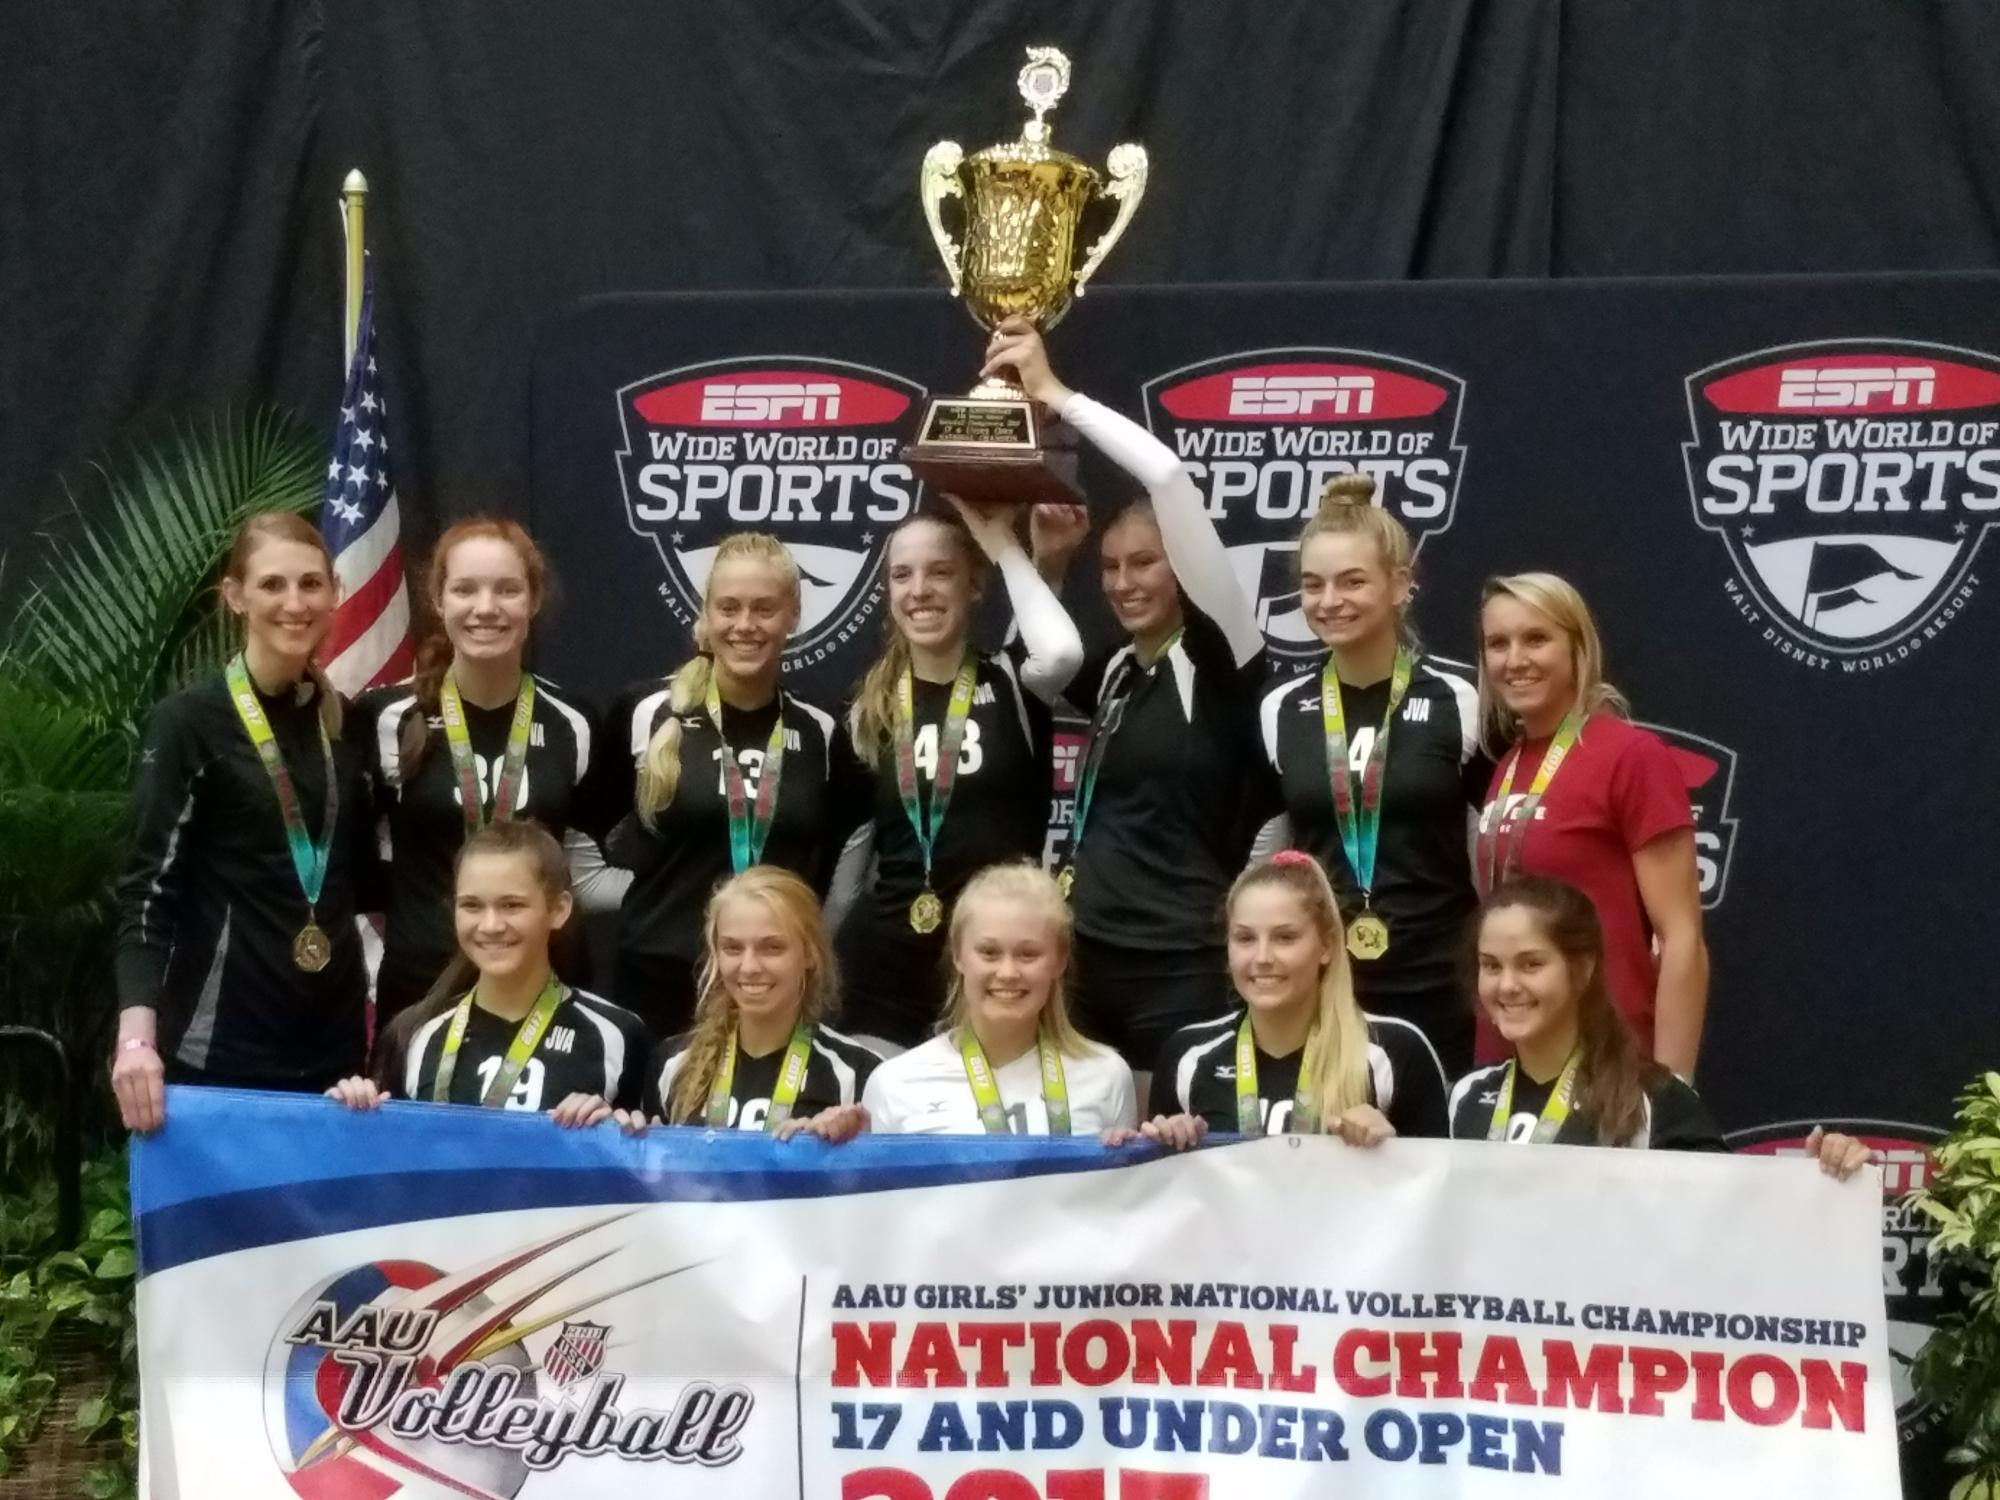 National Champions!!